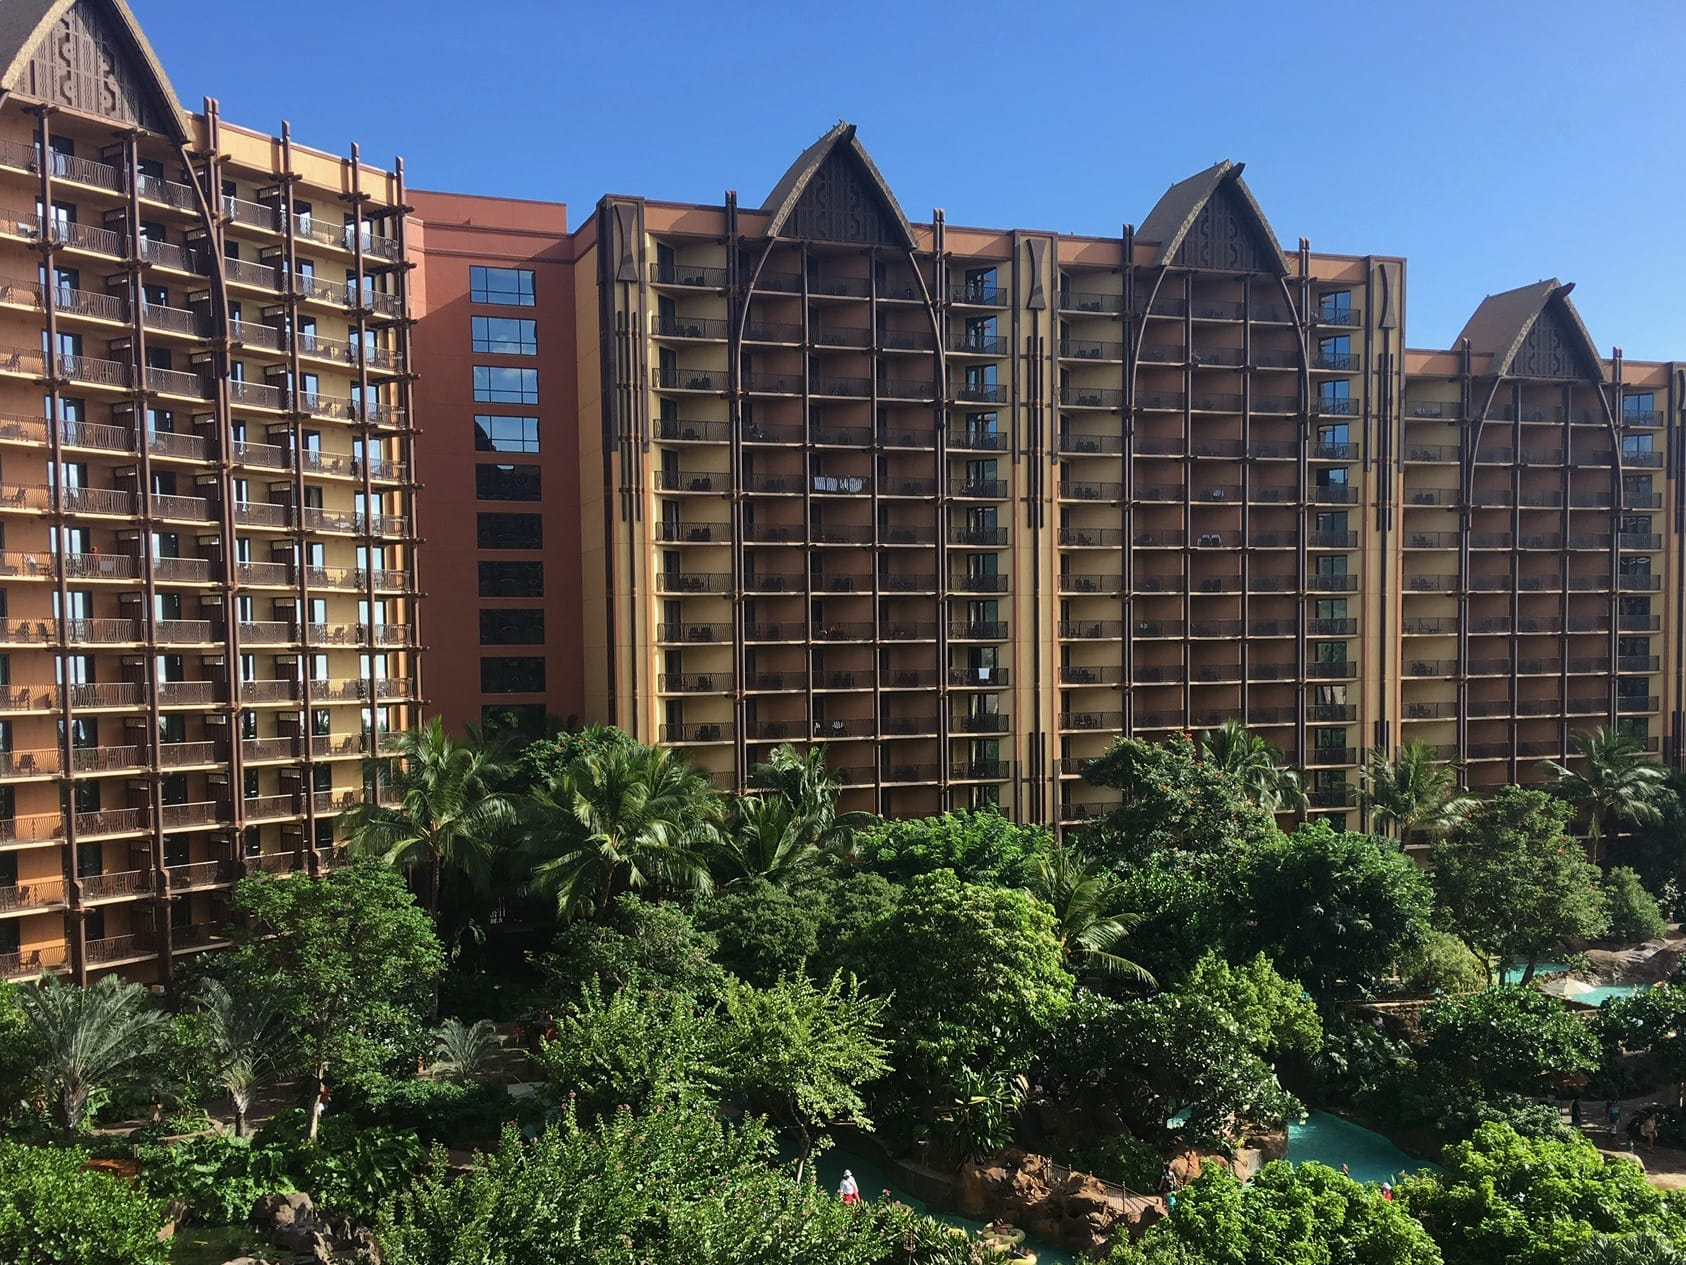 Buildings at Aulani, A Disney Resort and Spa in Hawaii